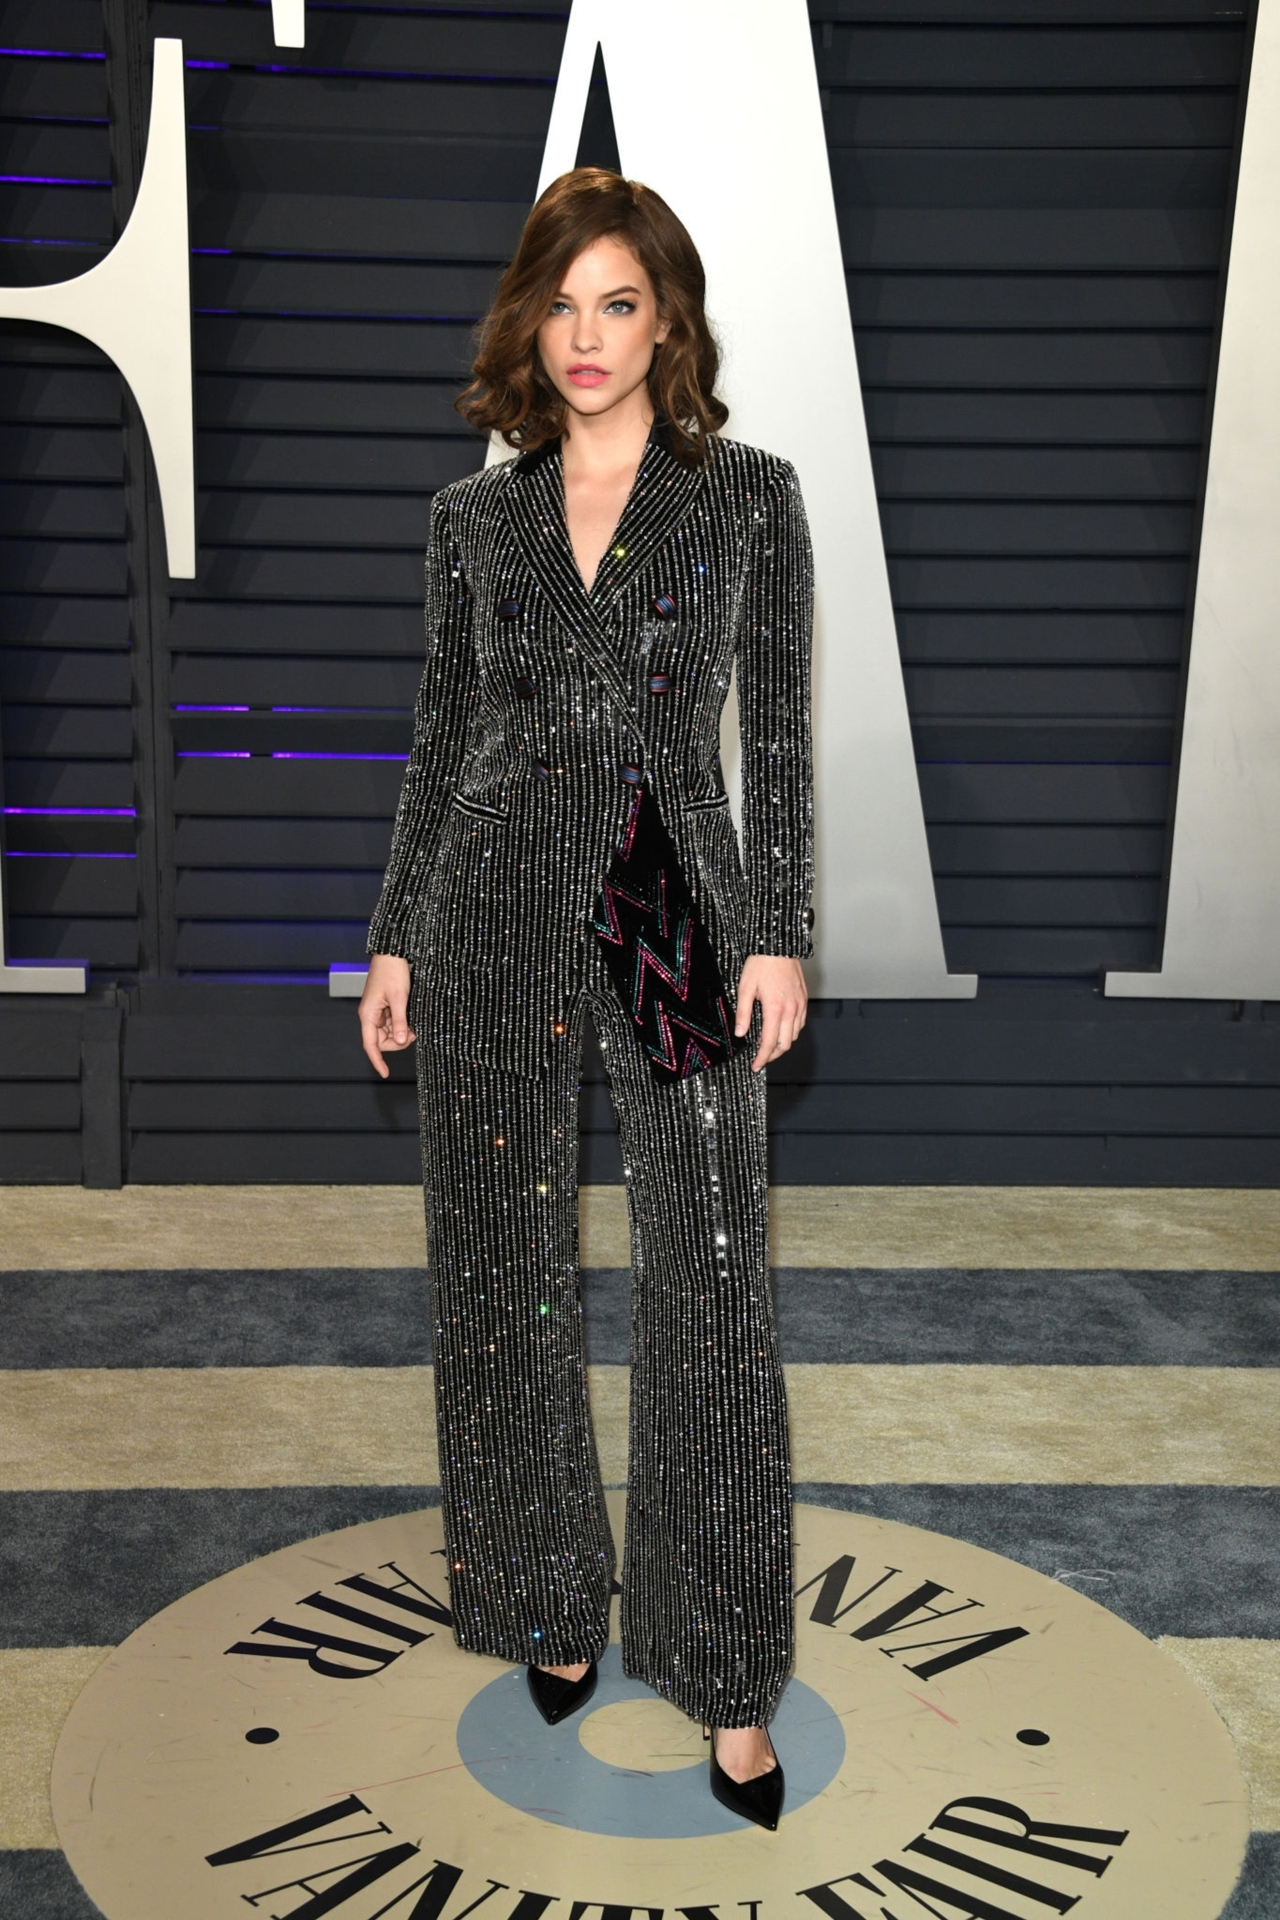 shoes barbara palvin celebrity oscars sparkle stripes suit blazer pants